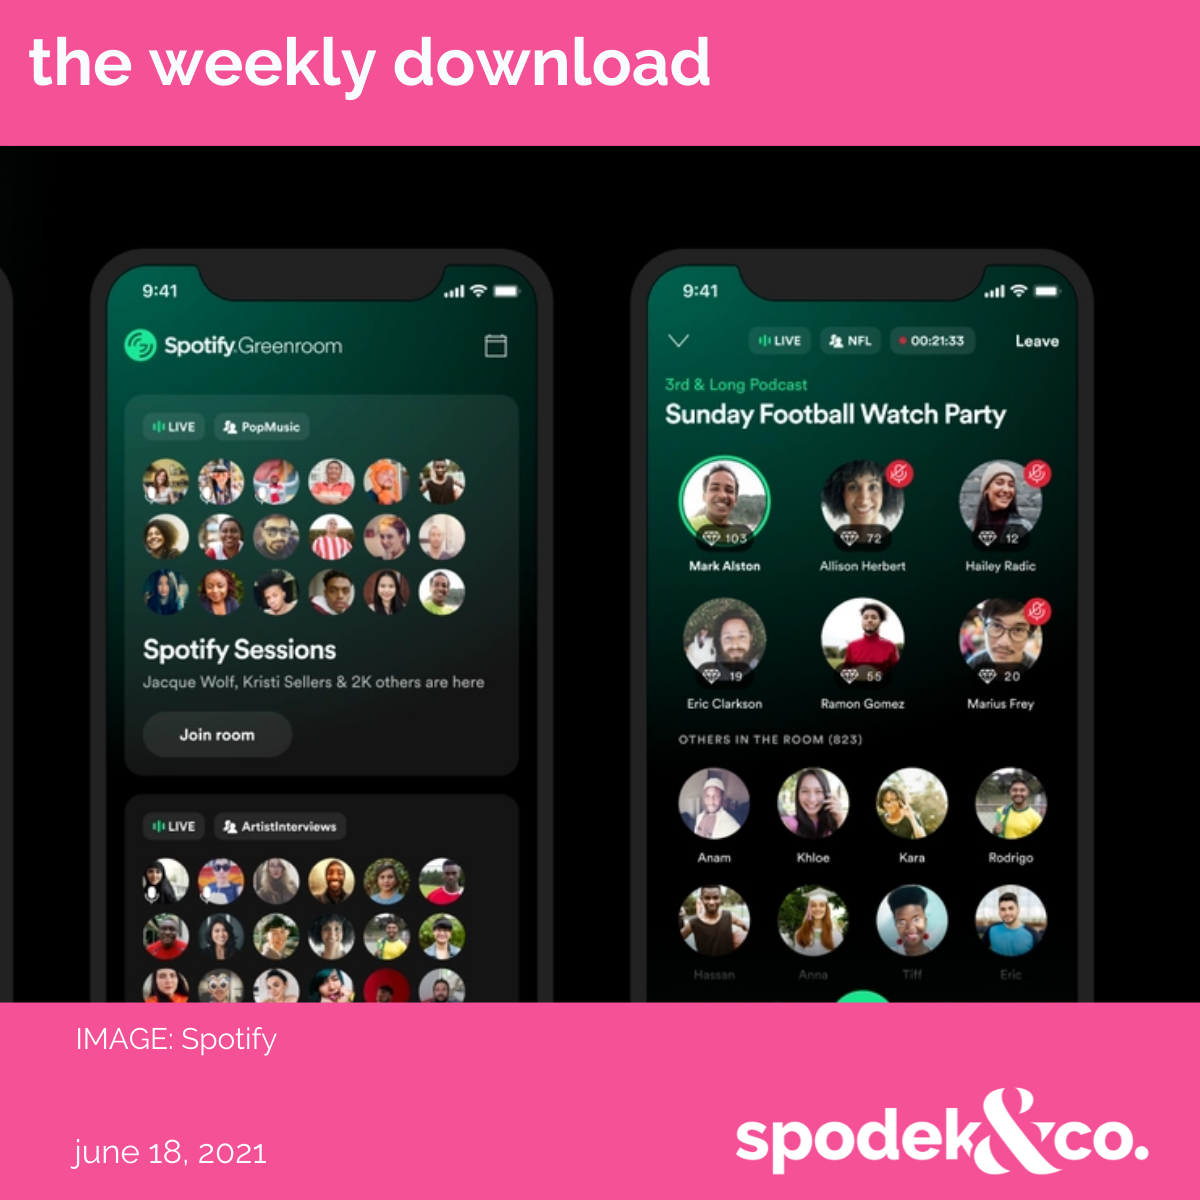 The Weekly Download – June 18, 2021